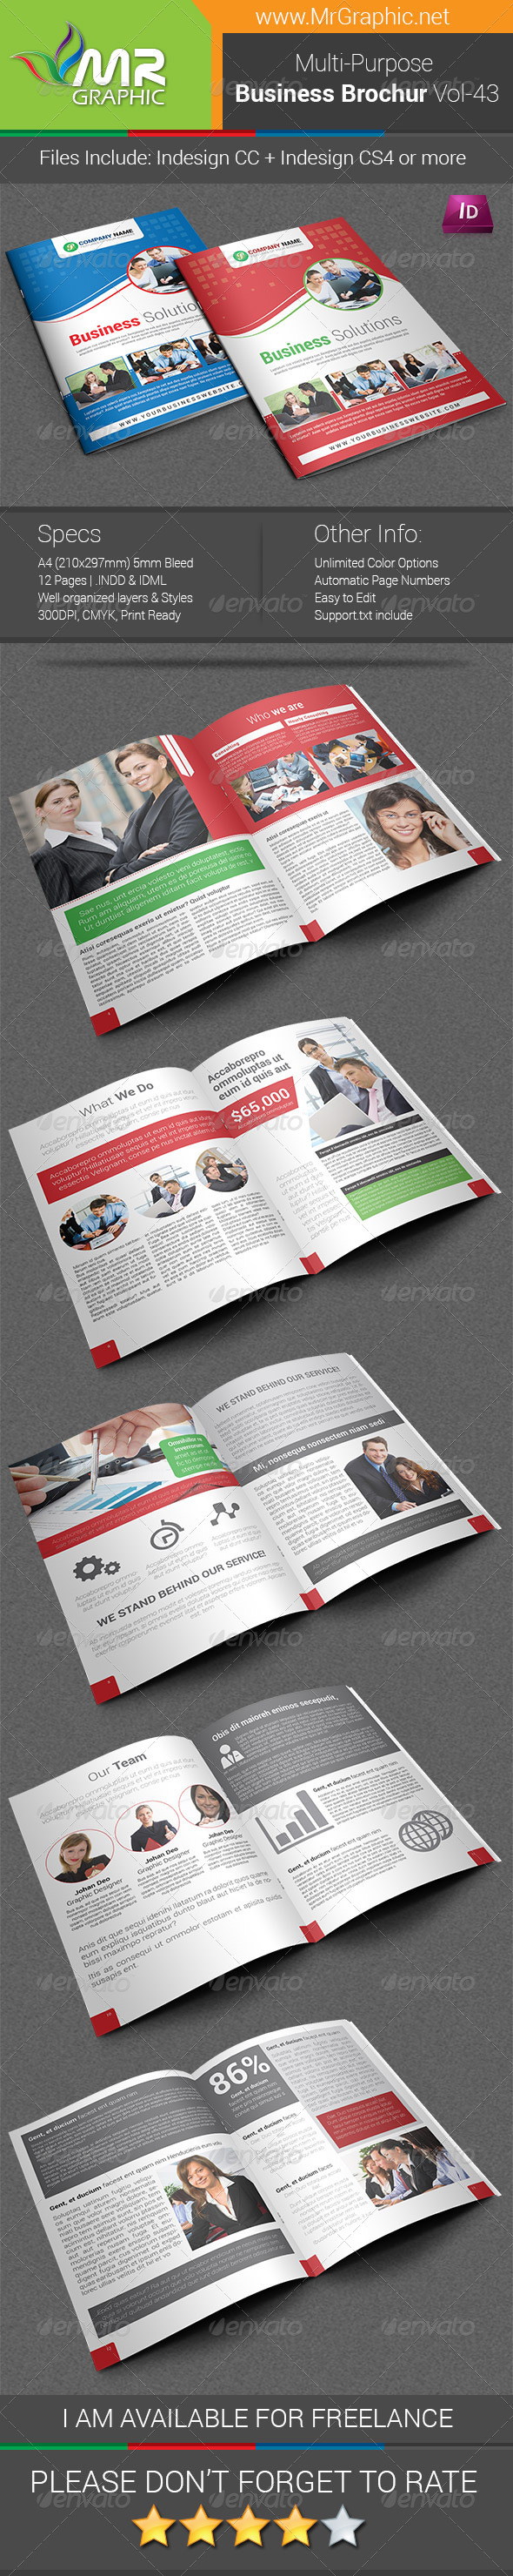 GraphicRiver Multipurpose Business Brochure Template Vol-43 6737550